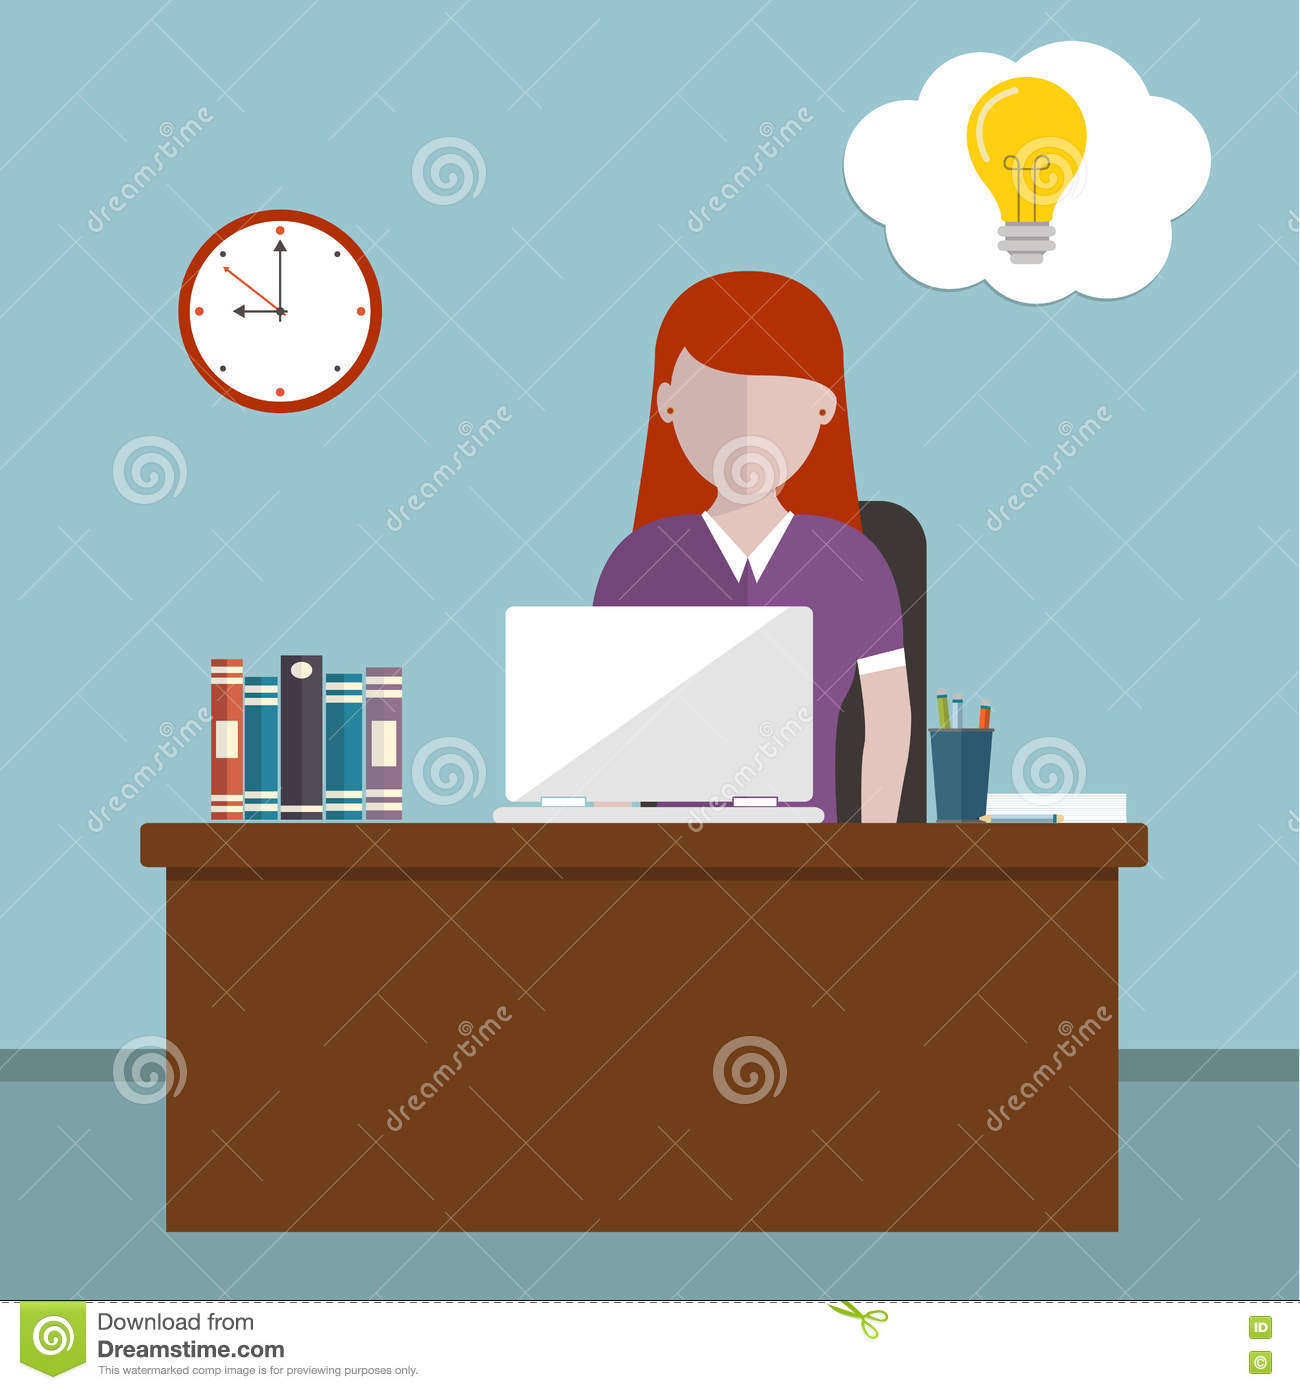 Workday and workplace concept. Vector illustration of a woman in the office having idea